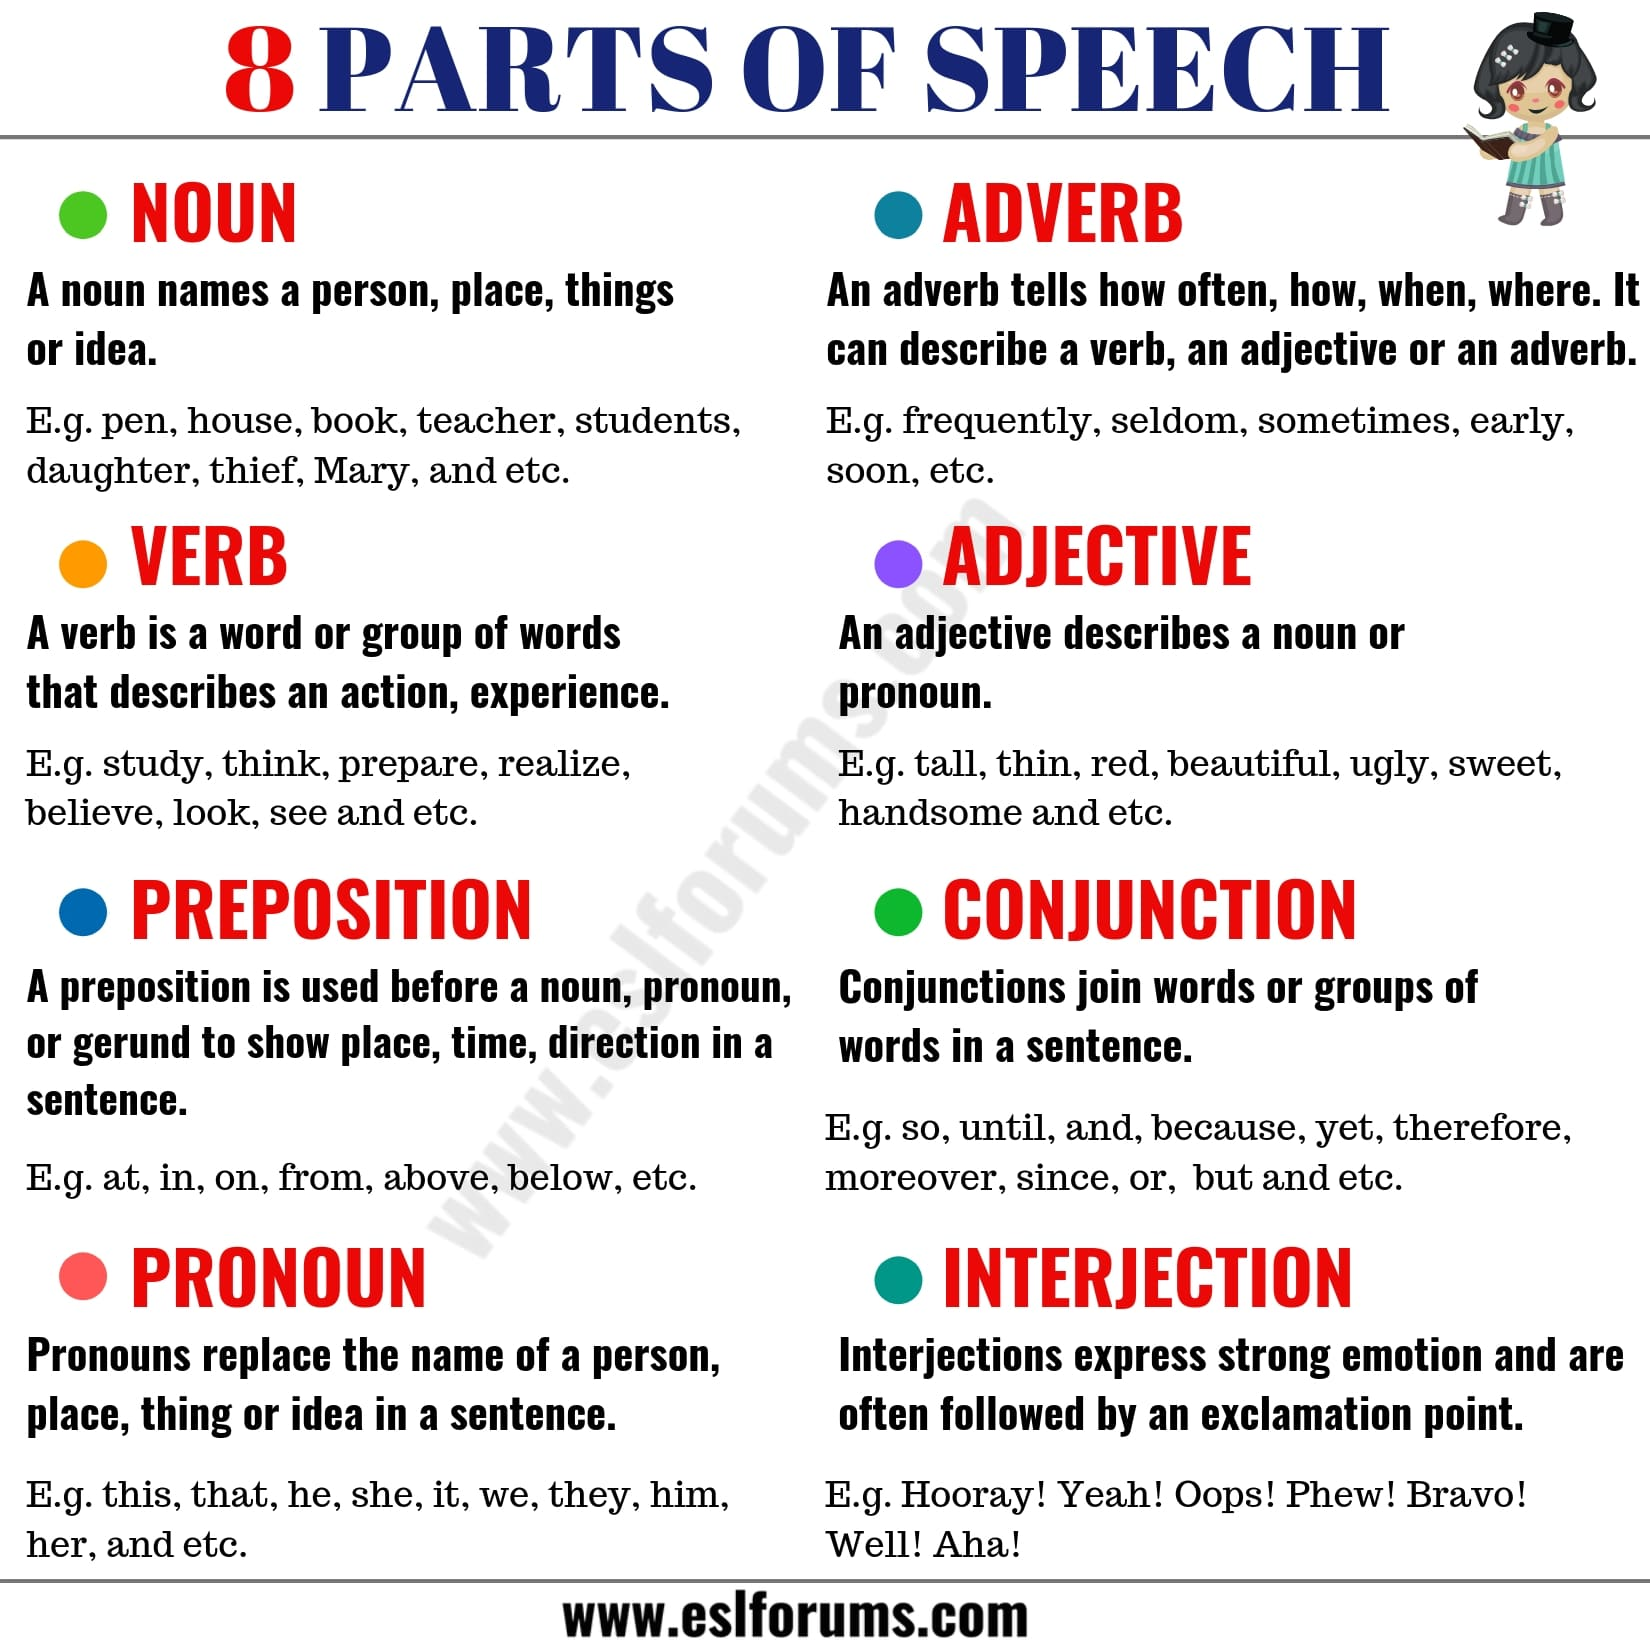 image relating to Parts of Speech Chart Printable titled 8 Components of Speech with Indicating and Insightful Illustrations - ESL Boards